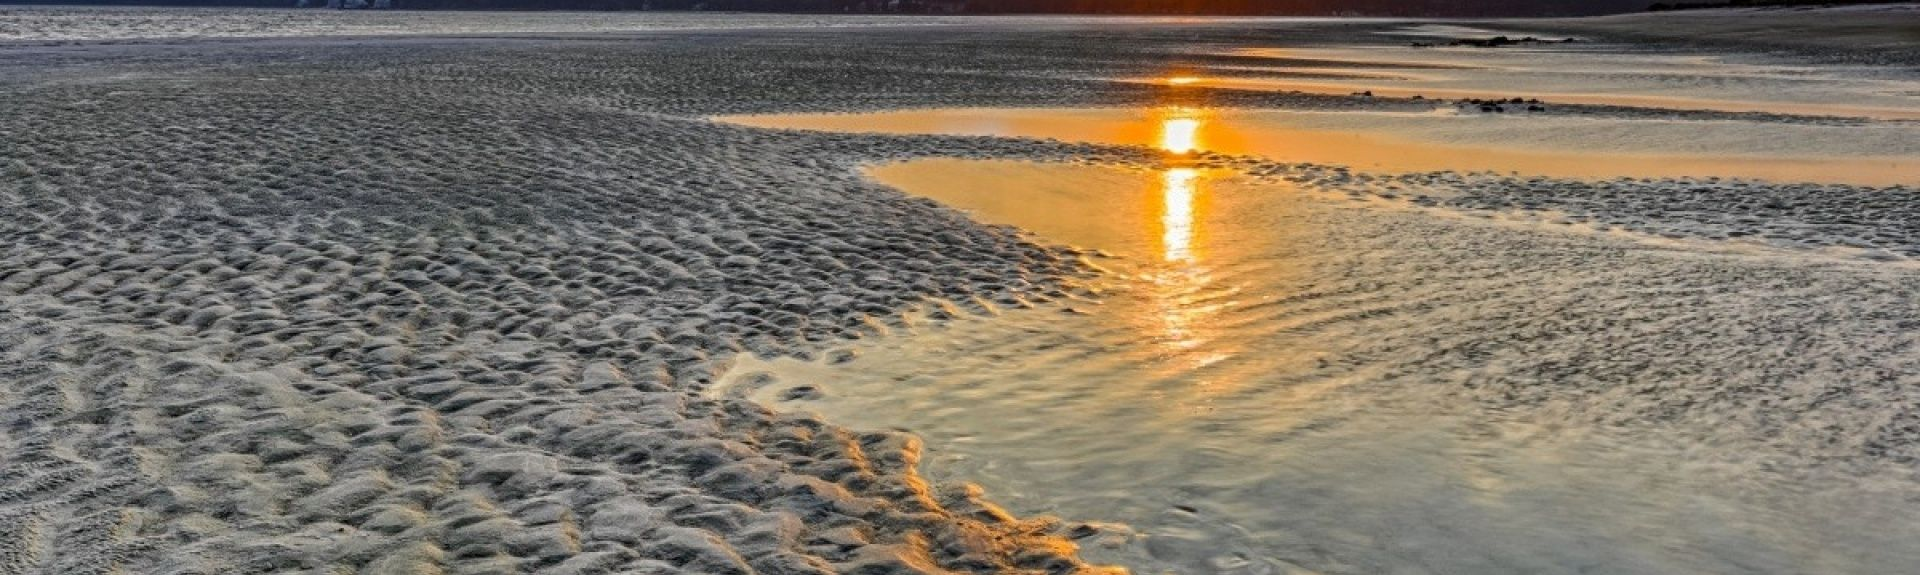 North Forest Beach, Hilton Head Island, South Carolina, Verenigde Staten